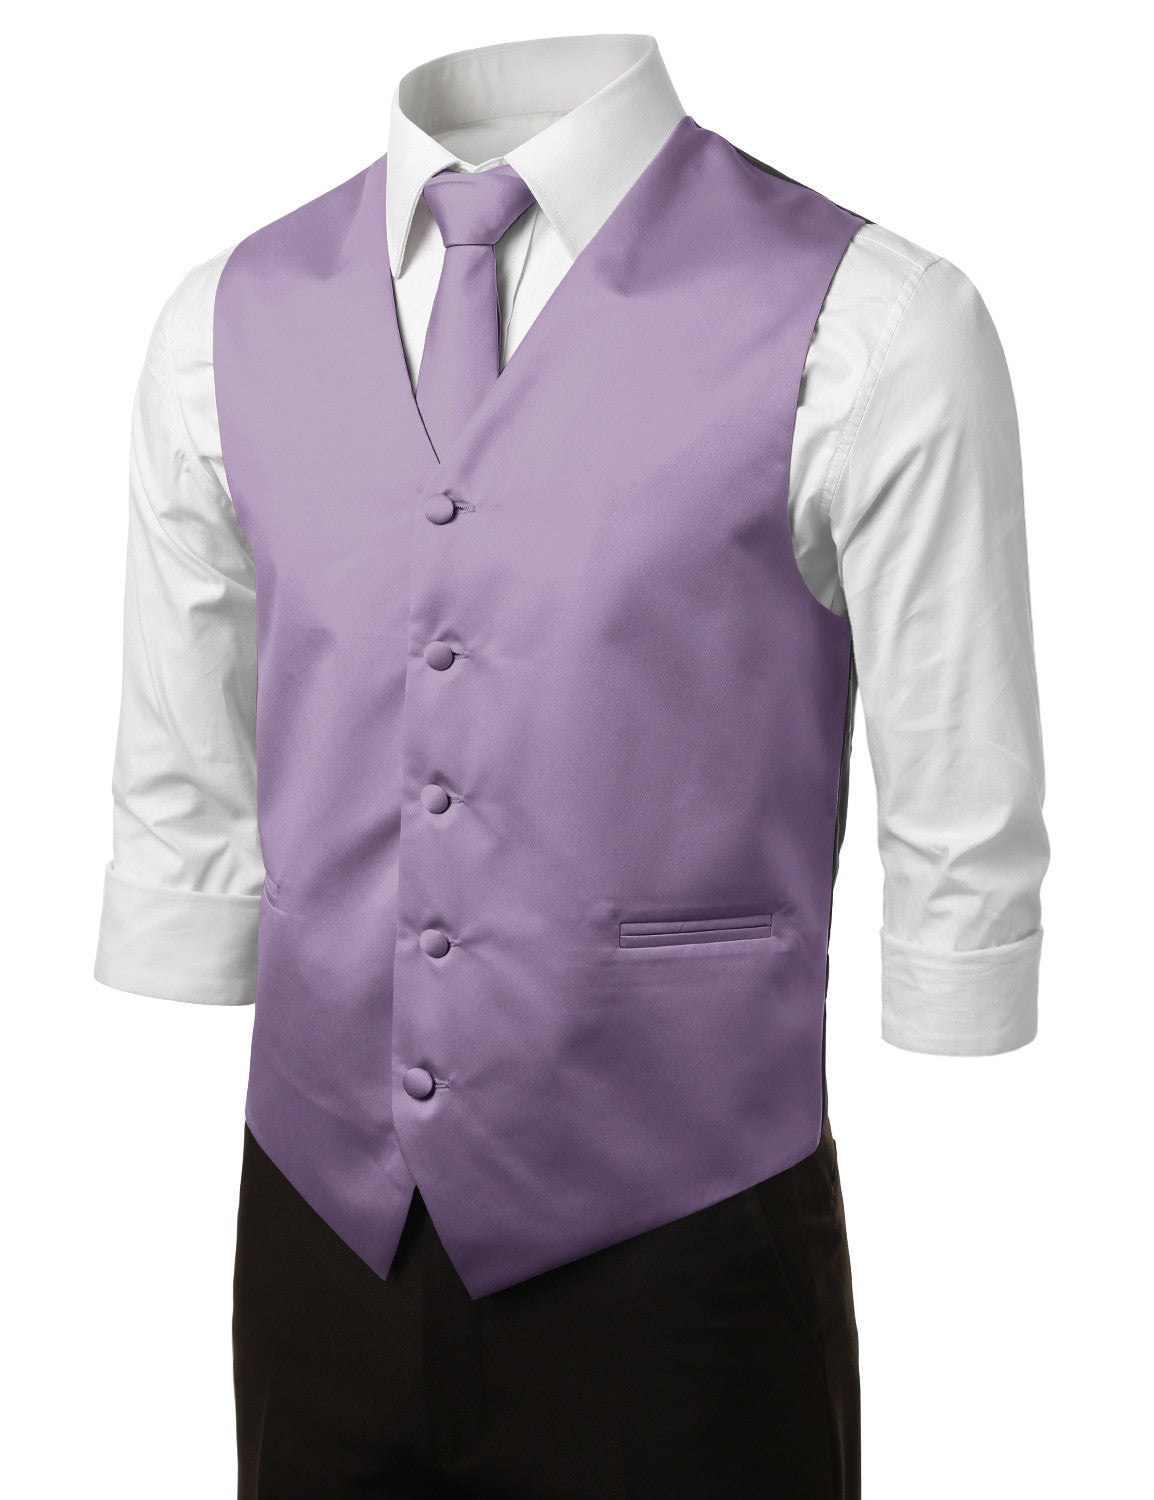 LAVENDER11 Formal Tuxedo 3 Piece Vest Set (Vest, Necktie, Pocket Square)- MONDAYSUIT